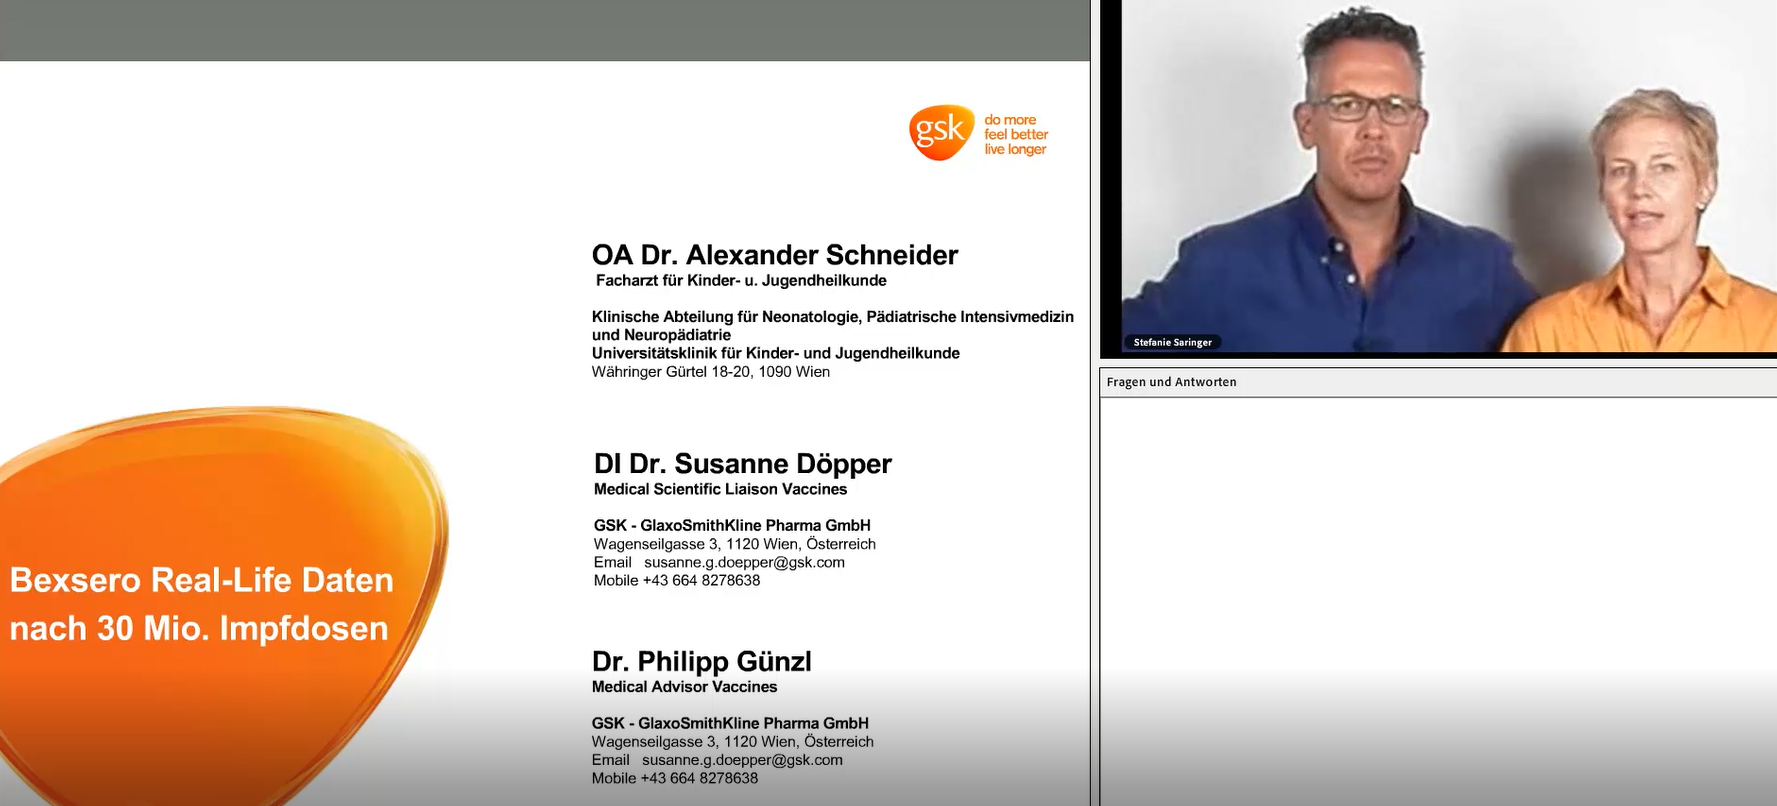 pic_Gsk Webinar July 2019.png